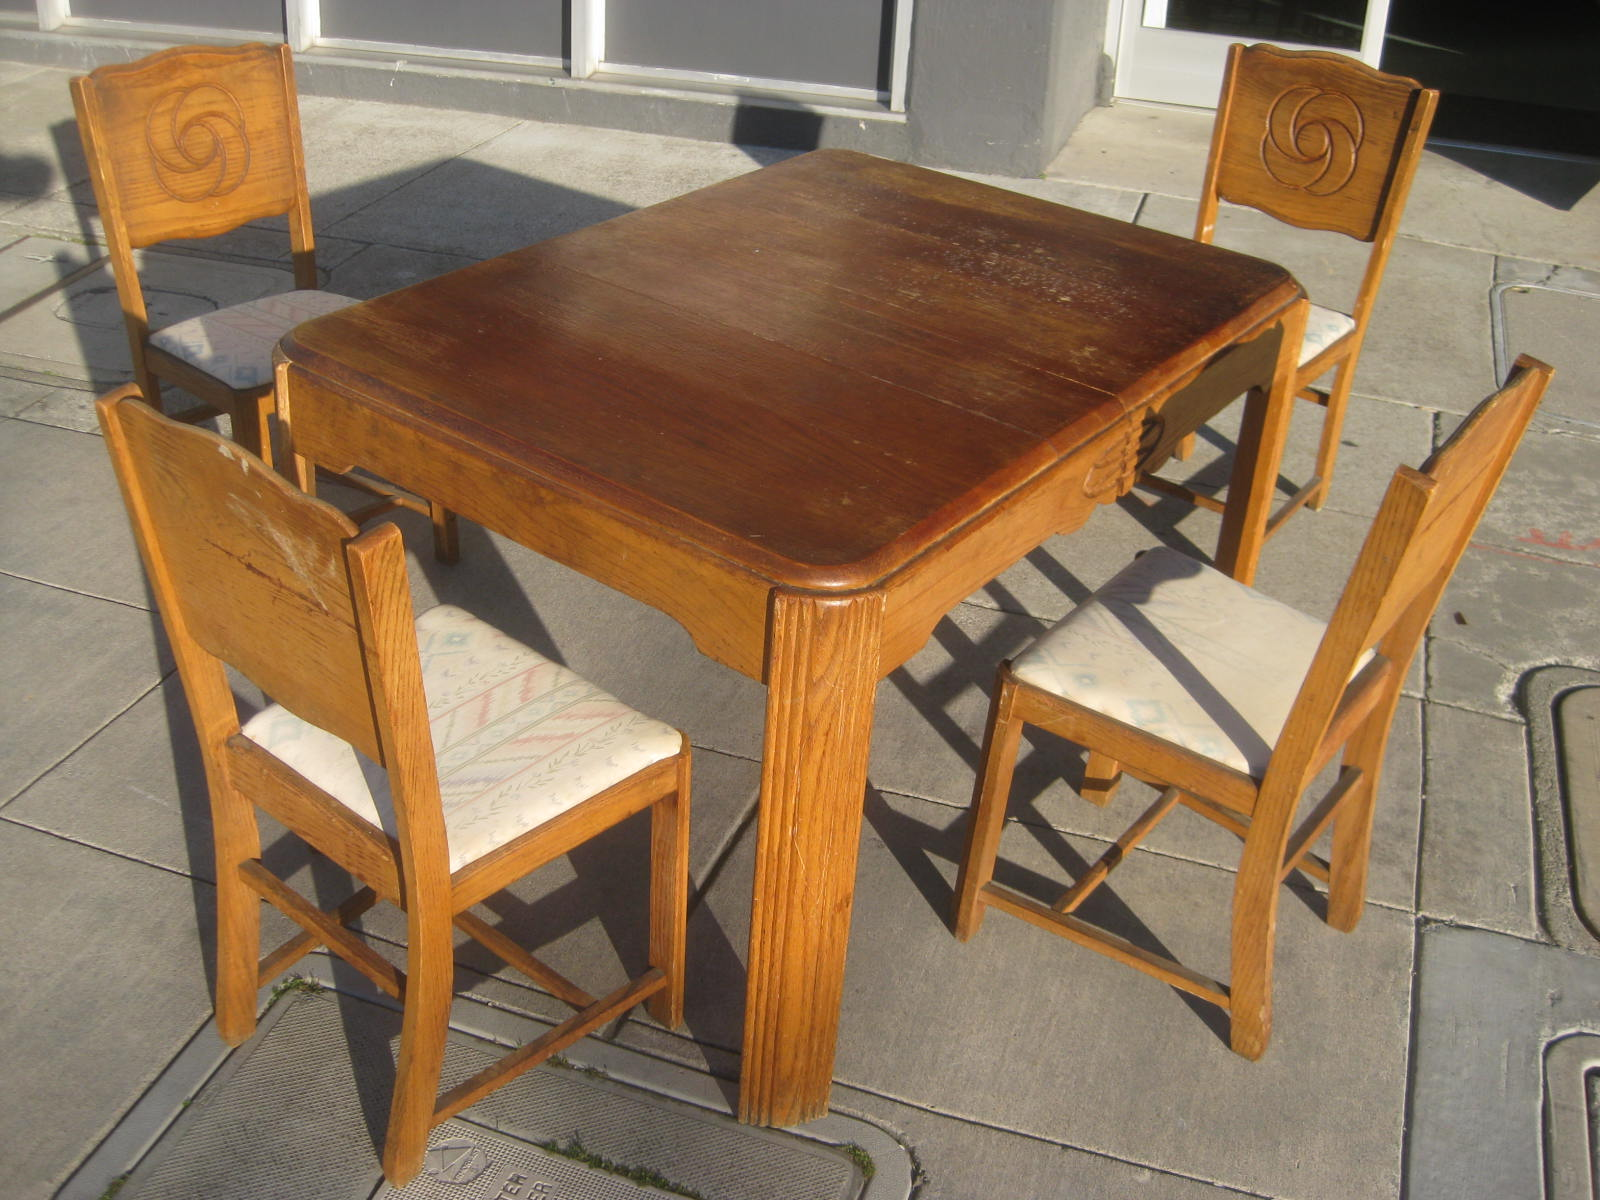 10 Things To Avoid In 1930s Kitchen Table | 1930s kitchen